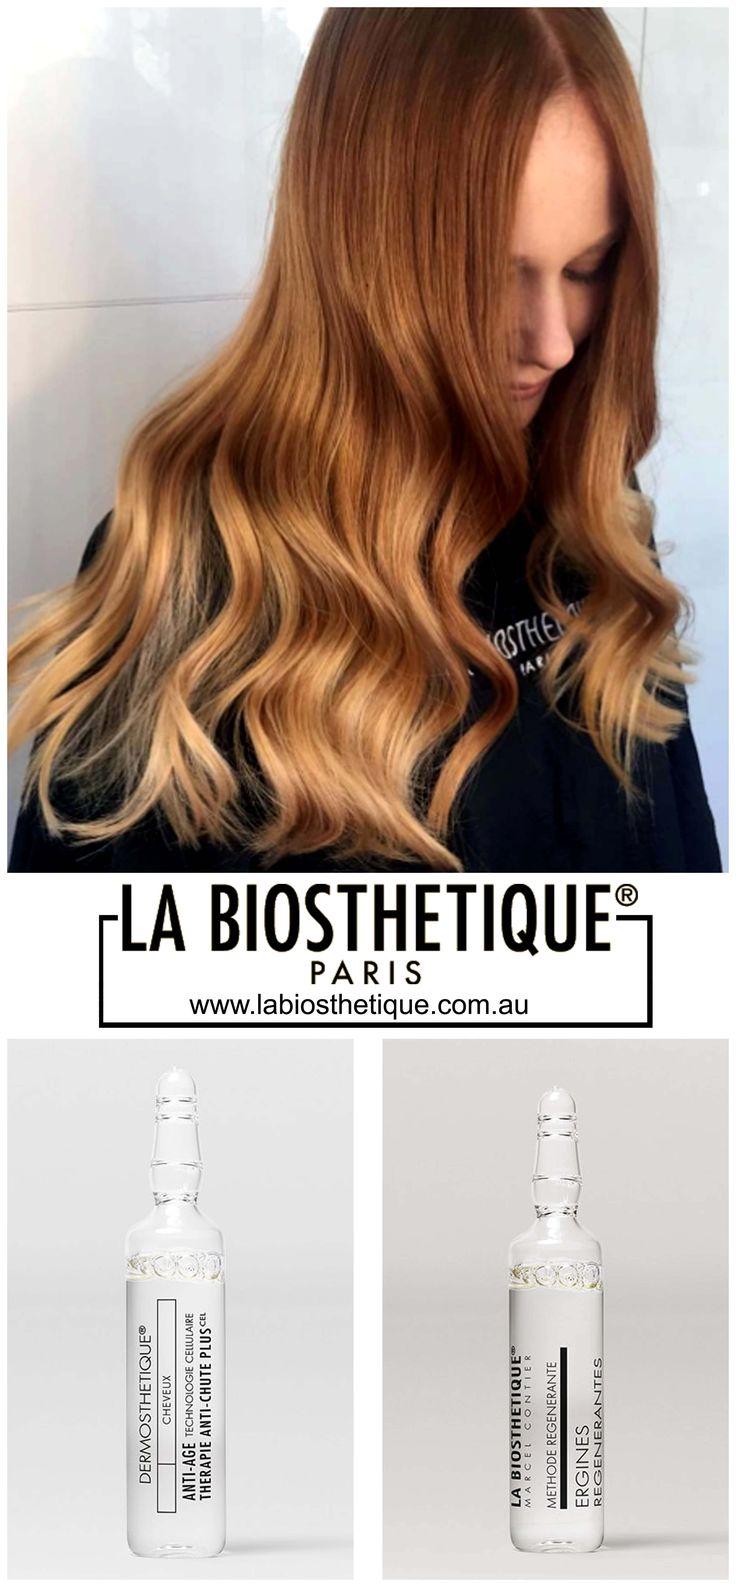 This ampoule hair treatment stimulates the natural nourishment of the hair roots, optimises hair quality and boosts hair growth. Hair care │Hair Growth │Hair styles │Hair loss treatment │New hair │Loose waves hair │Natural hair tips │Natural hair care │Deep conditioner │Shampoo│ Hair Products #Haircare #Hairgrowth #Hairlosstreatment #Newhair #Straithair #Loosewaveshair #Naturalhairtips #Naturalhaircare #Deepconditioner #Shampoo# Hairproducts